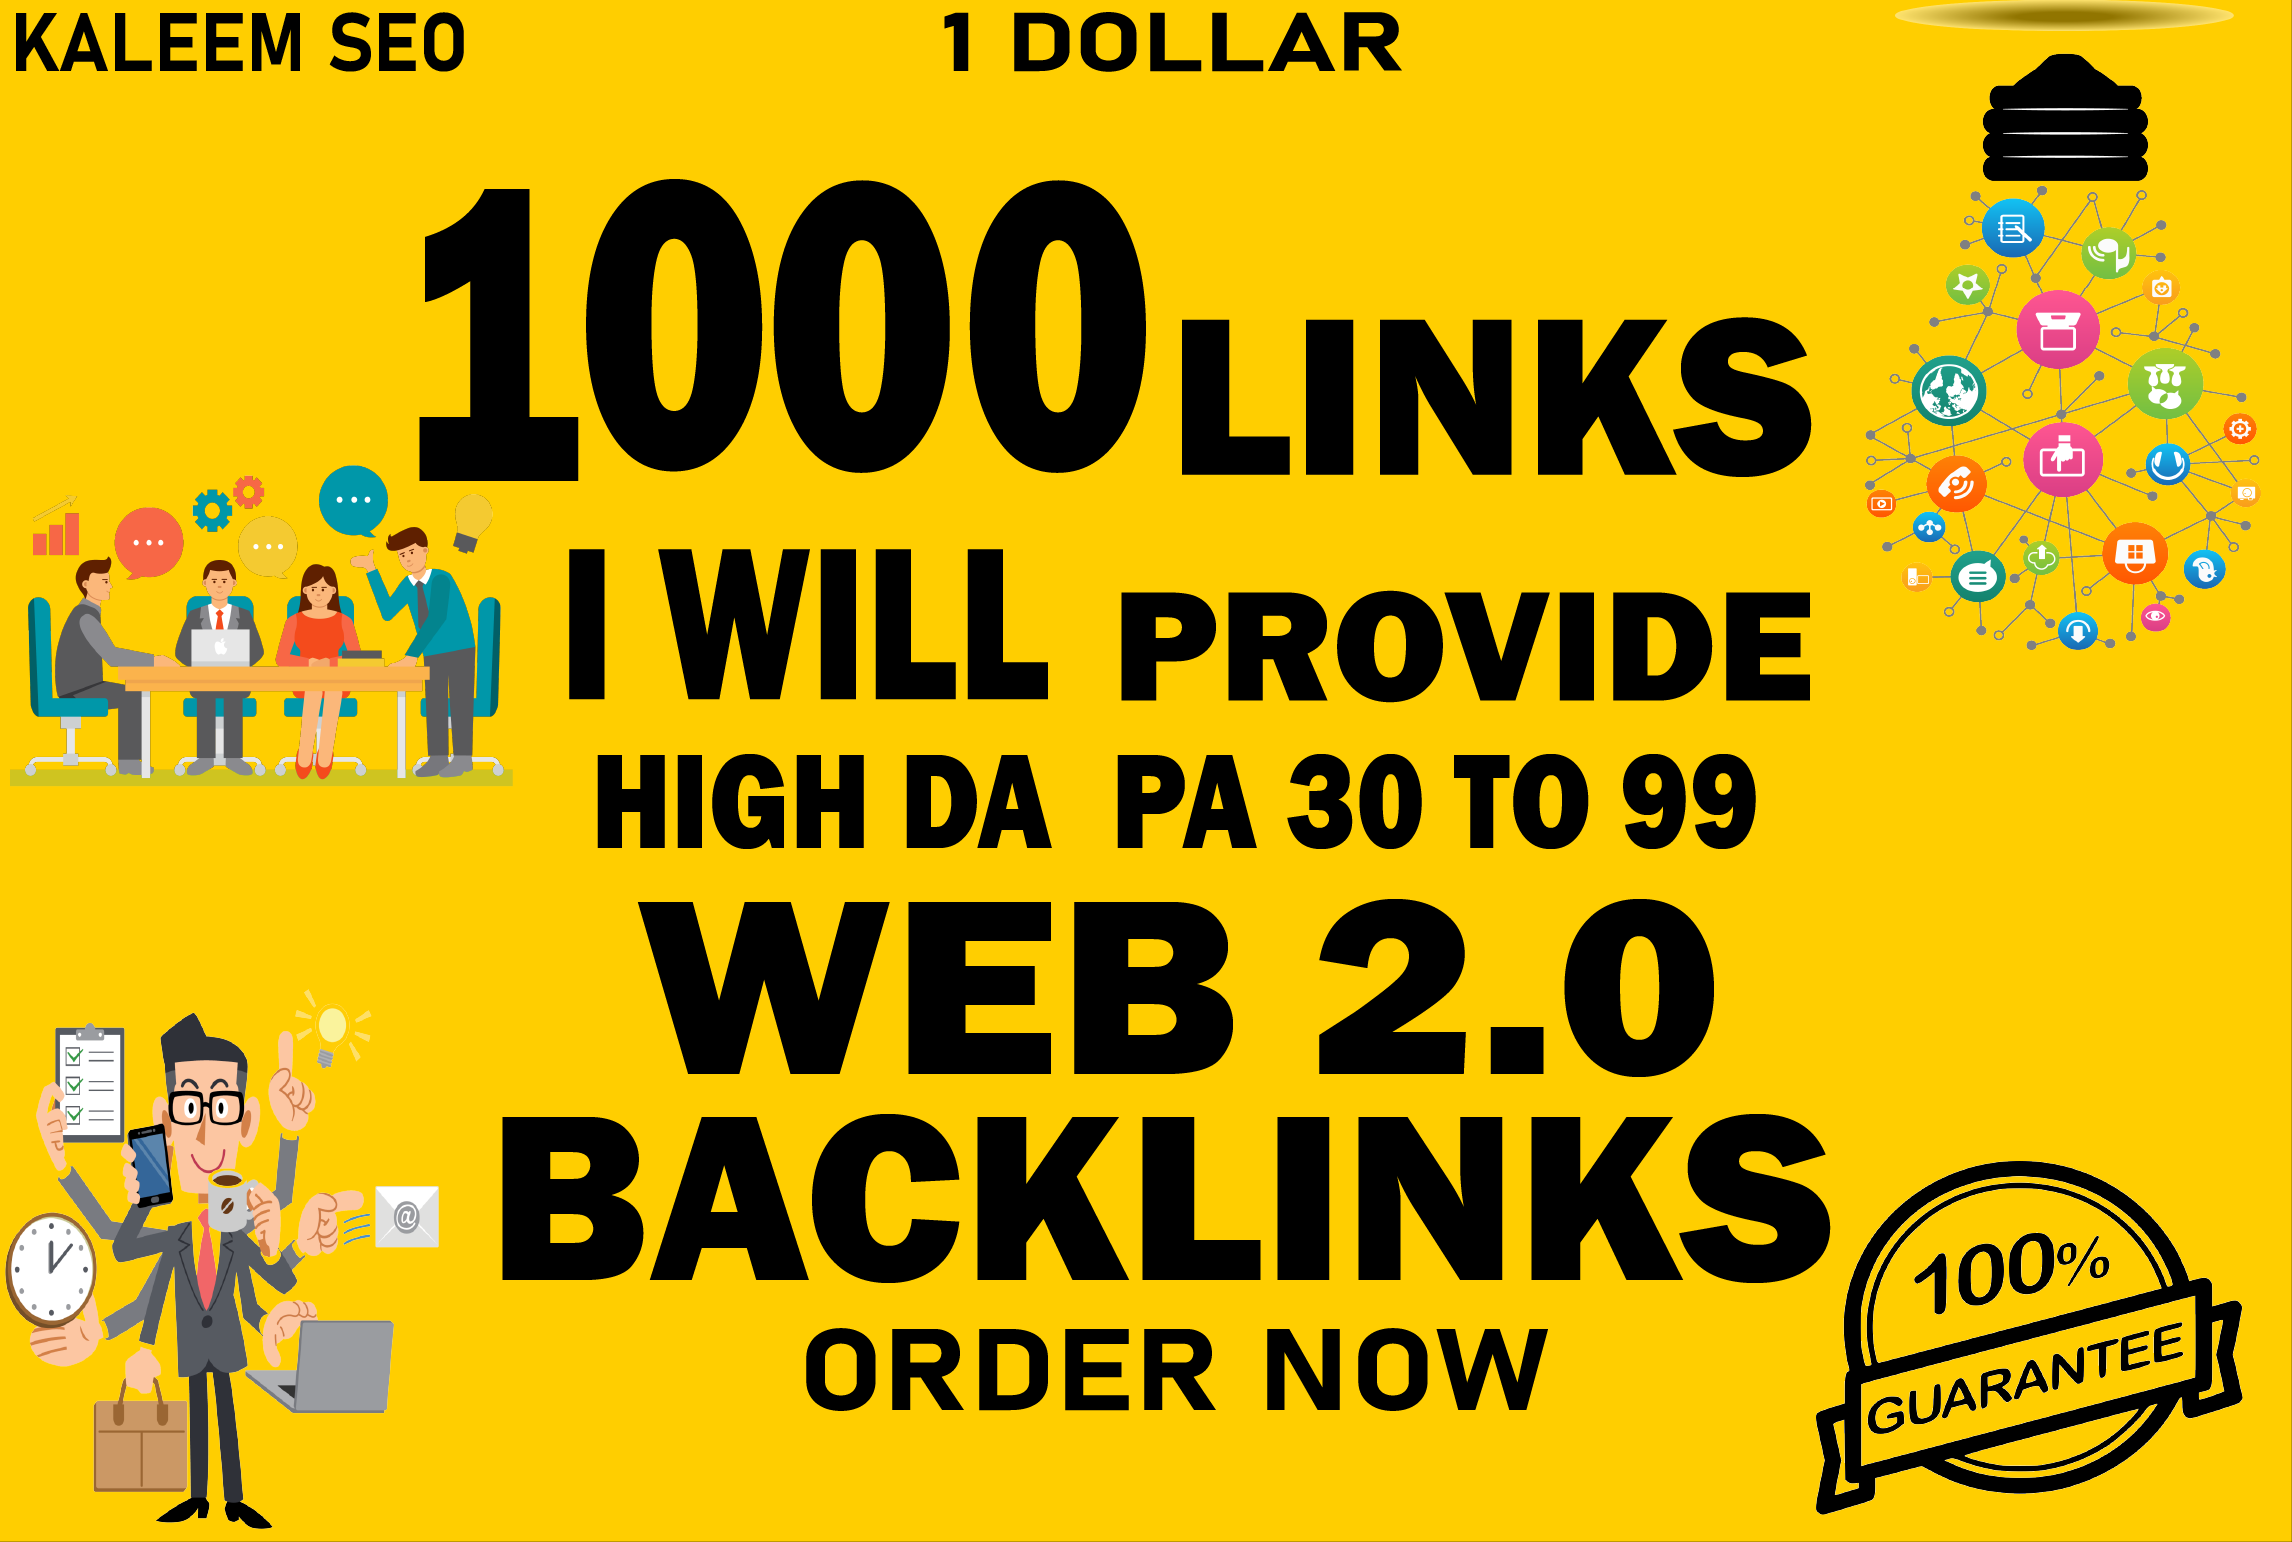 I will build 300 web 2.0 backlinks for you